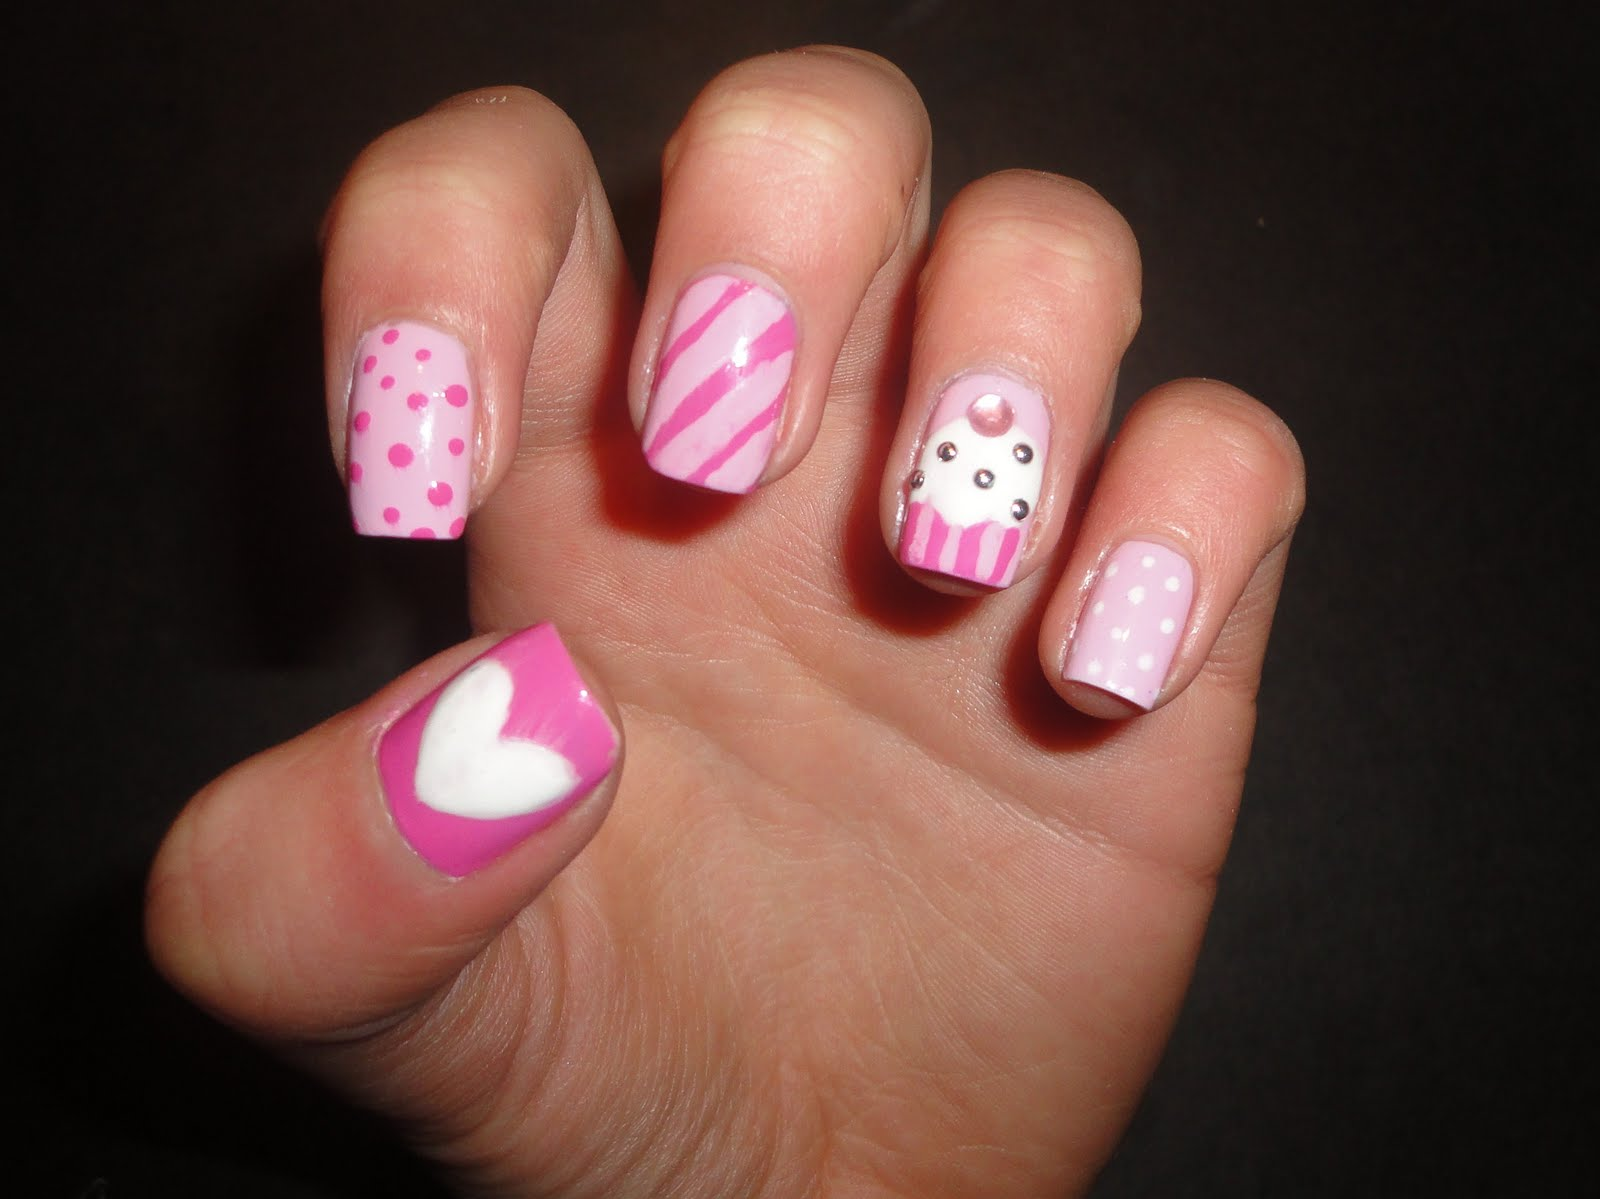 Cheetah nail art designs